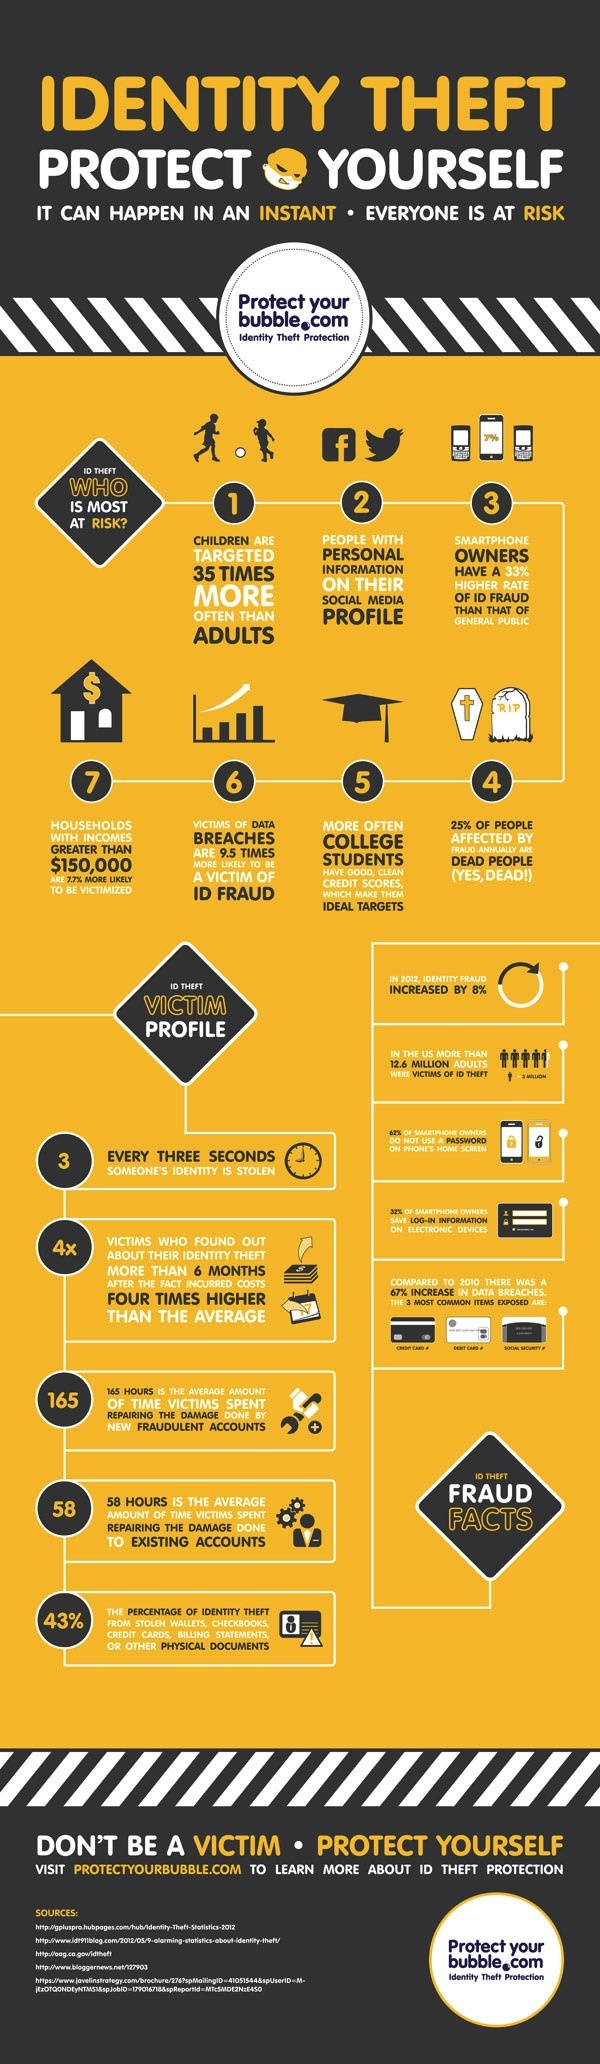 General Identity Theft Infographic. | Identity Theft Infographics ...